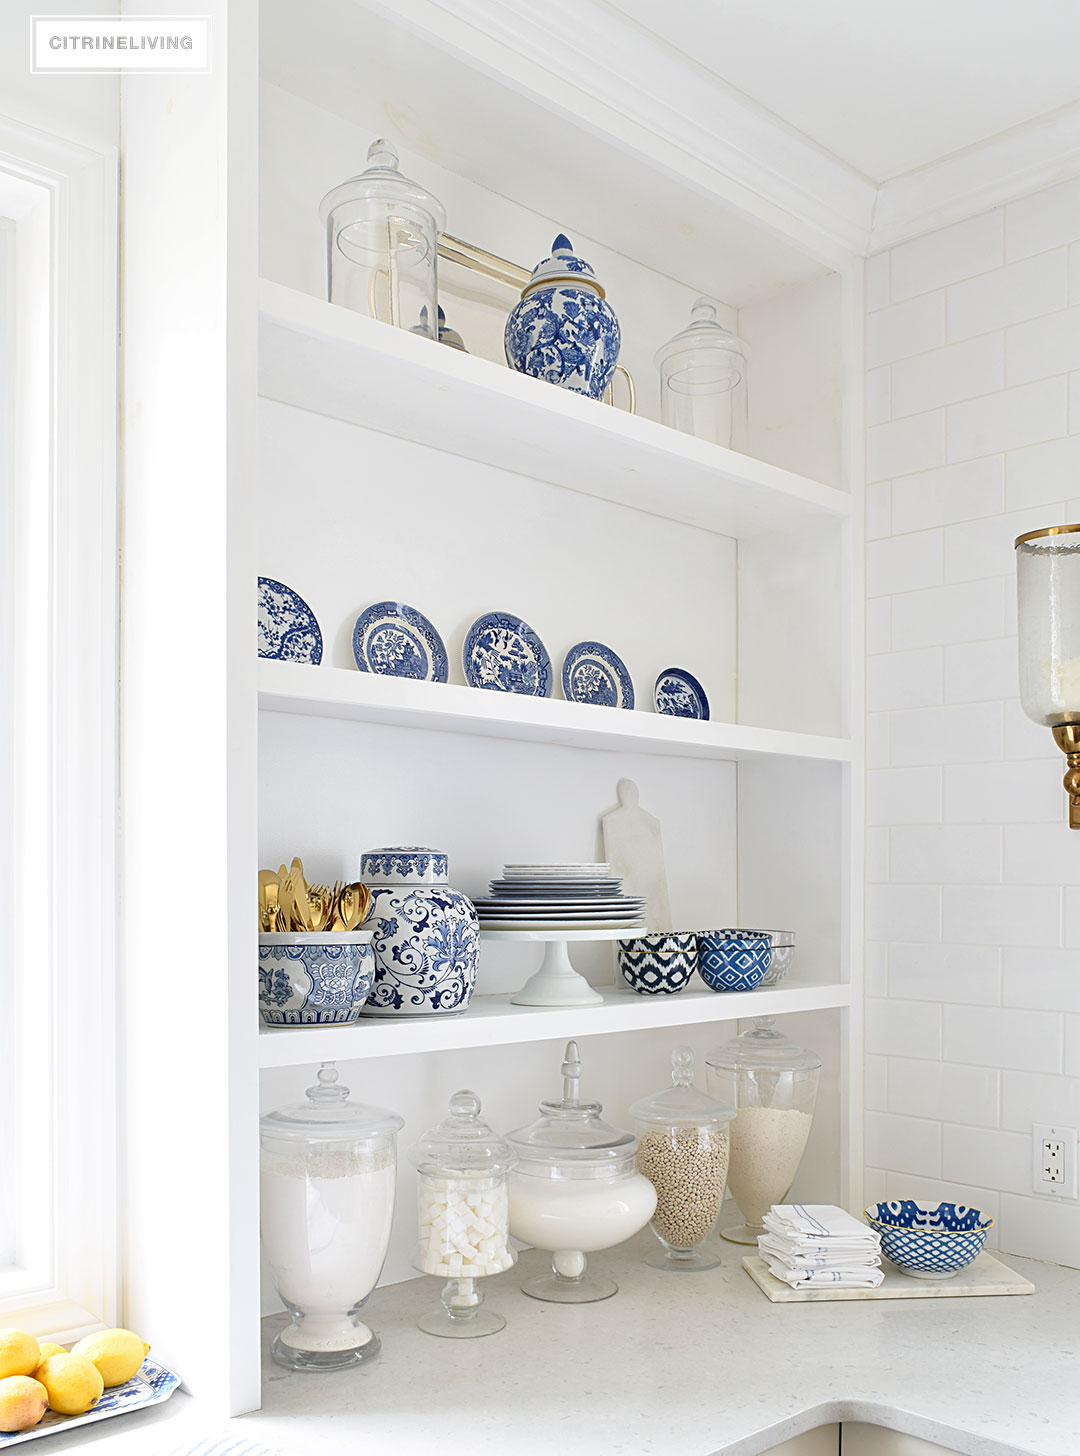 A white kitchen with open shelving is the perfect home for gorgeous blue and white accessories and dishes on display.